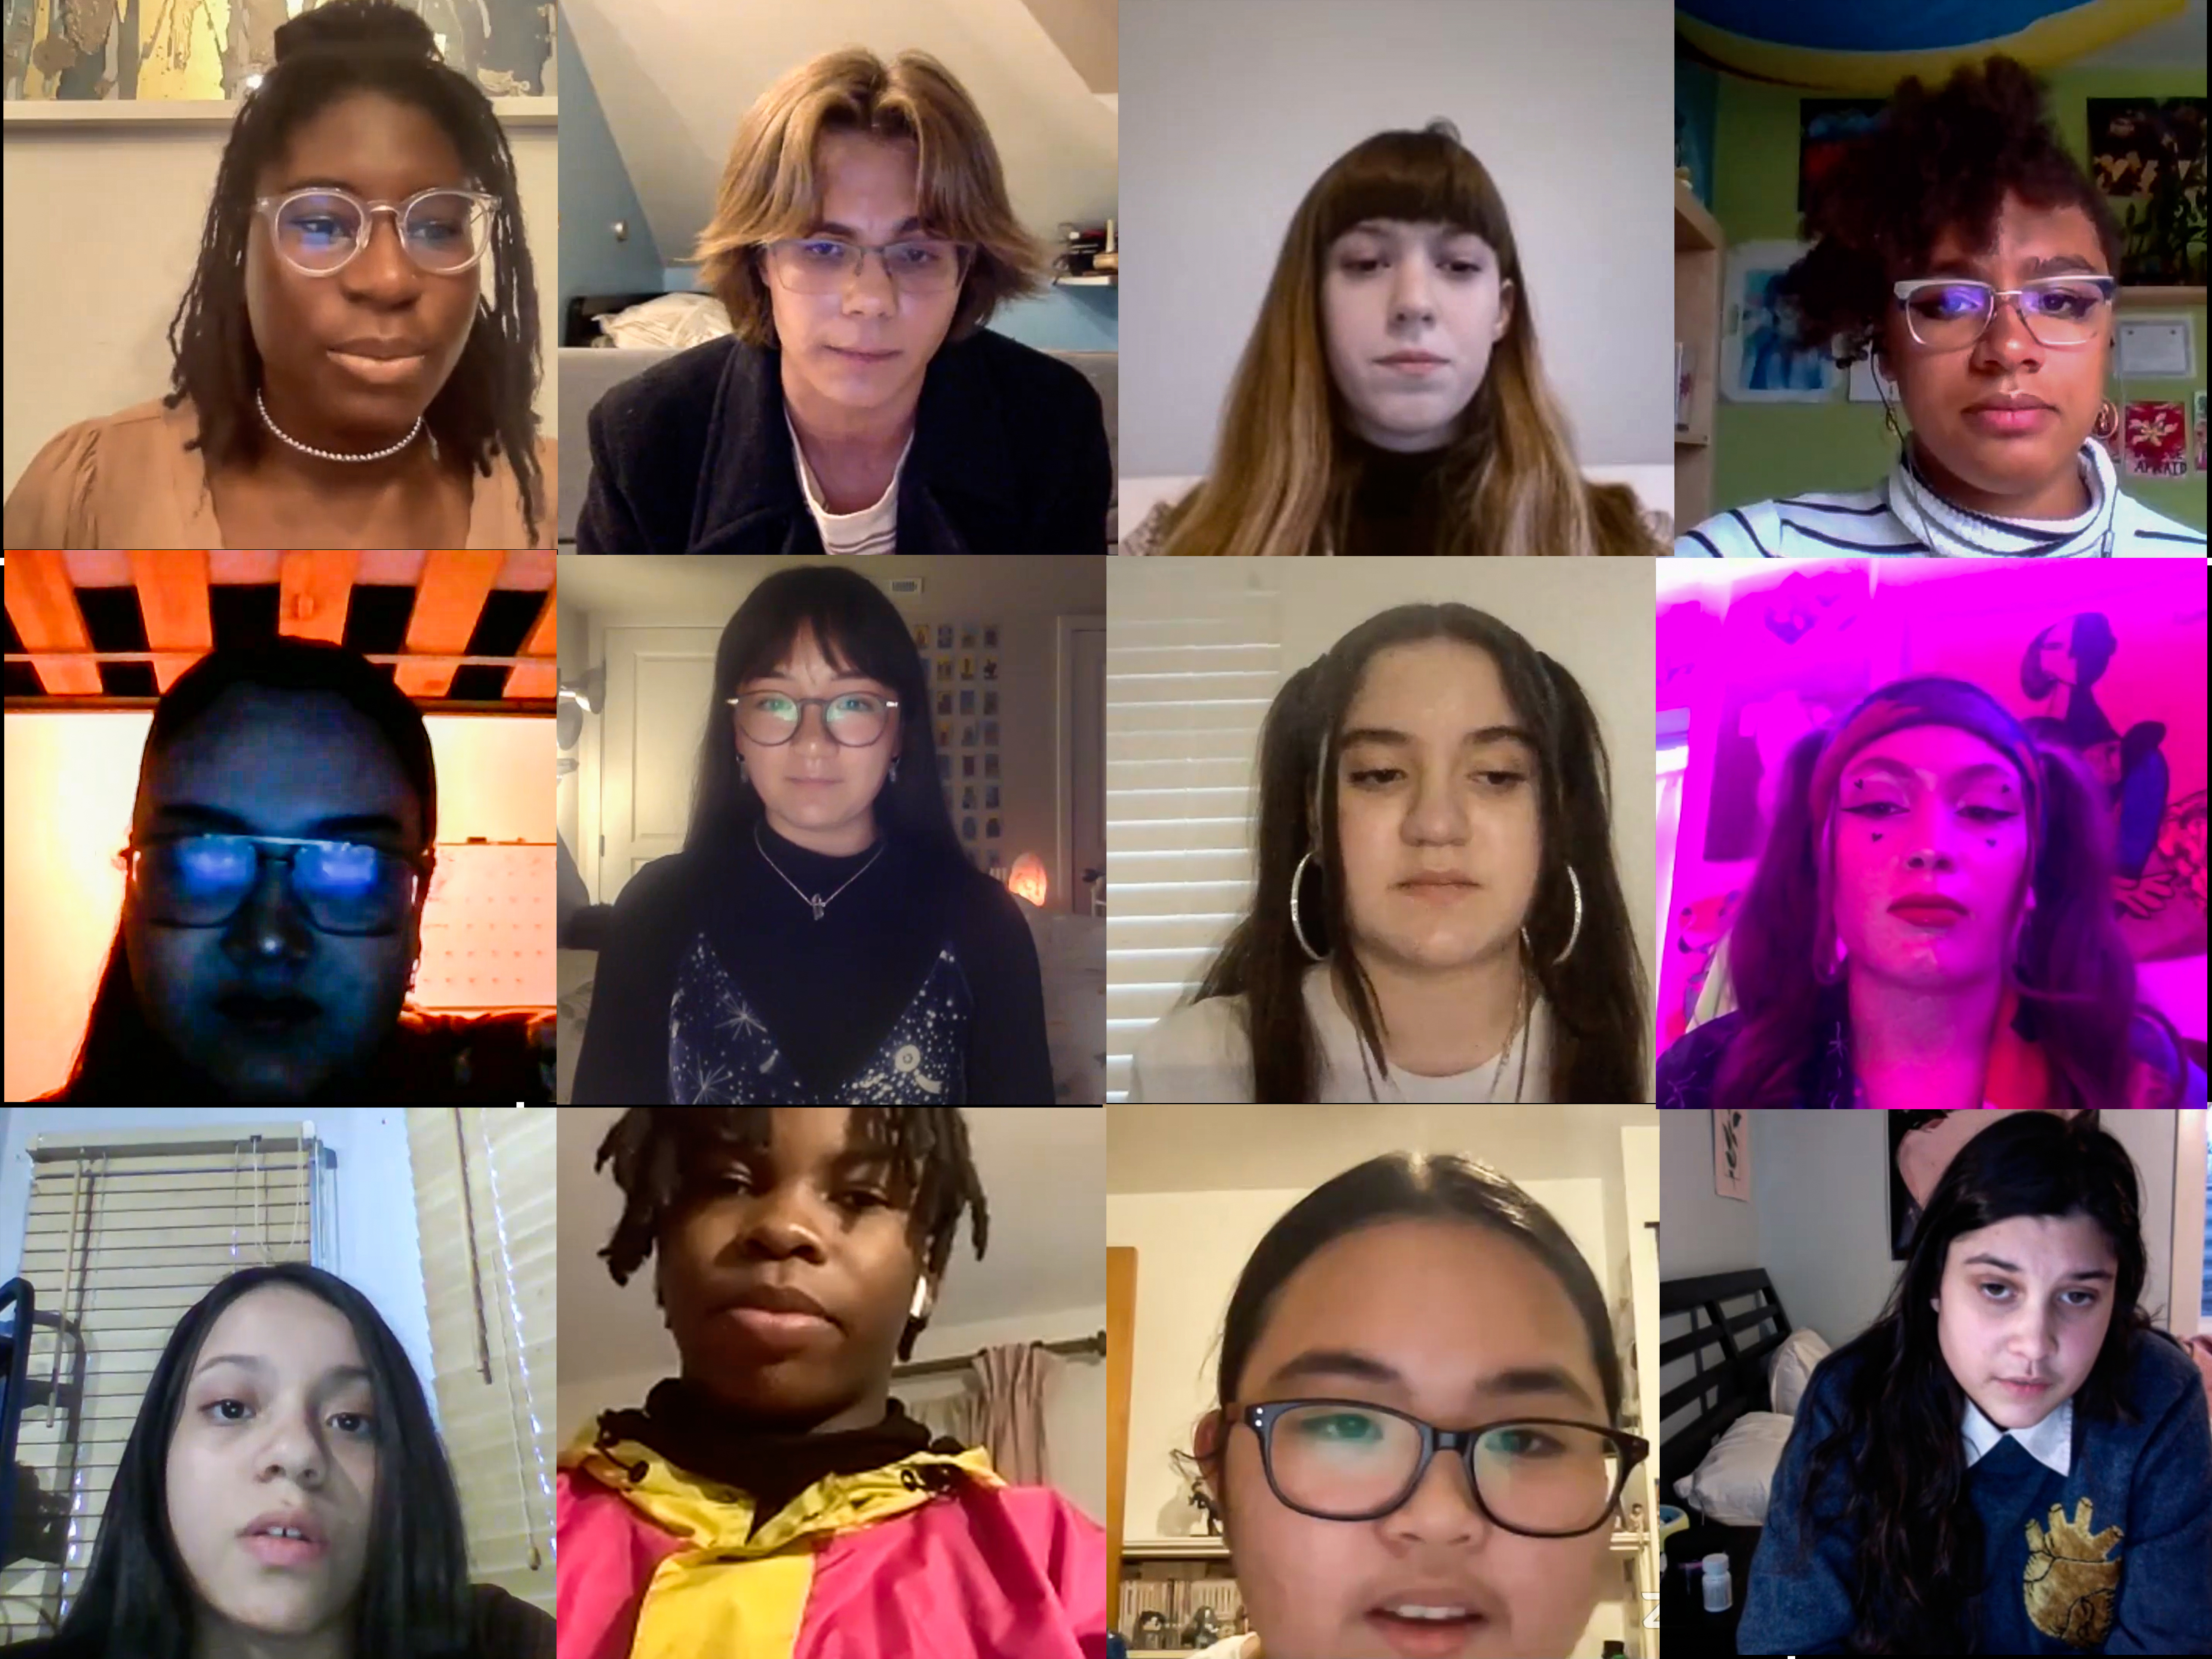 A collage of 12 screenshots from a Zoom meeting that show teenagers' faces.